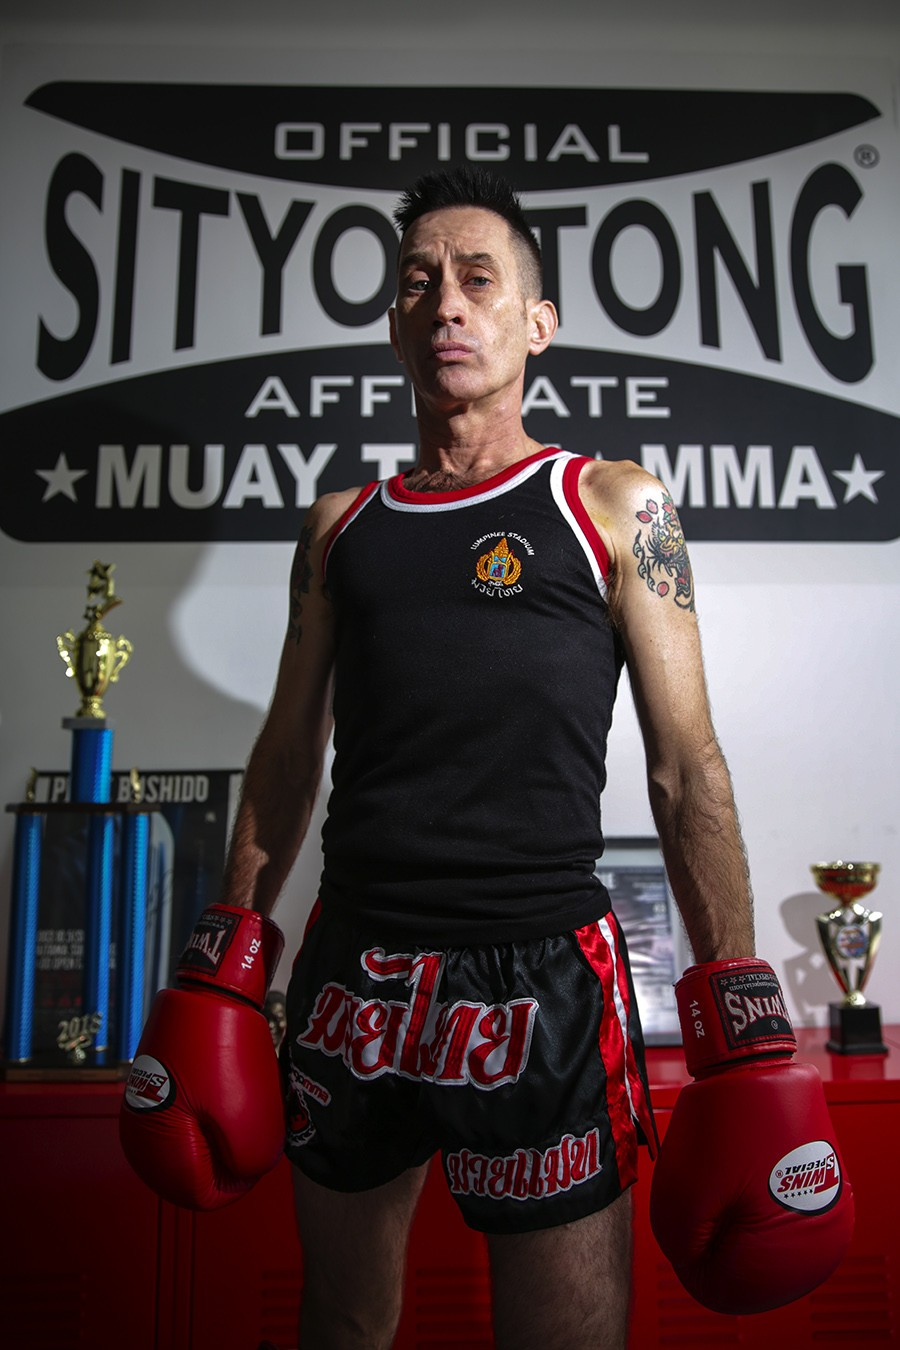 """Rob Nelson, 52, Chicago MMA - """"This has allowed me to prove that your body is amazing if you treat it right and it will recover amazingly. Age is just a number. Get off the fence. You can't do anything if you don't try. The worst that can happen is you don't like it. The best is you find a new passion in your life. I hear people, 'Well, I'm going to get in shape before I try' or 'I've got to do this before.' How about you just show up and let go and be where you are, no matter where you are, and see how you like it? Maybe you're only going to do it for conditioning and training and for fun. That's fine. Maybe you fall in love and you become more committed and you want to compete. That's fine, too. Whatever it is, it's fine, but you won't know until you try. And, if you have an interest, check it out."""" - GEOFF STELLFOX"""